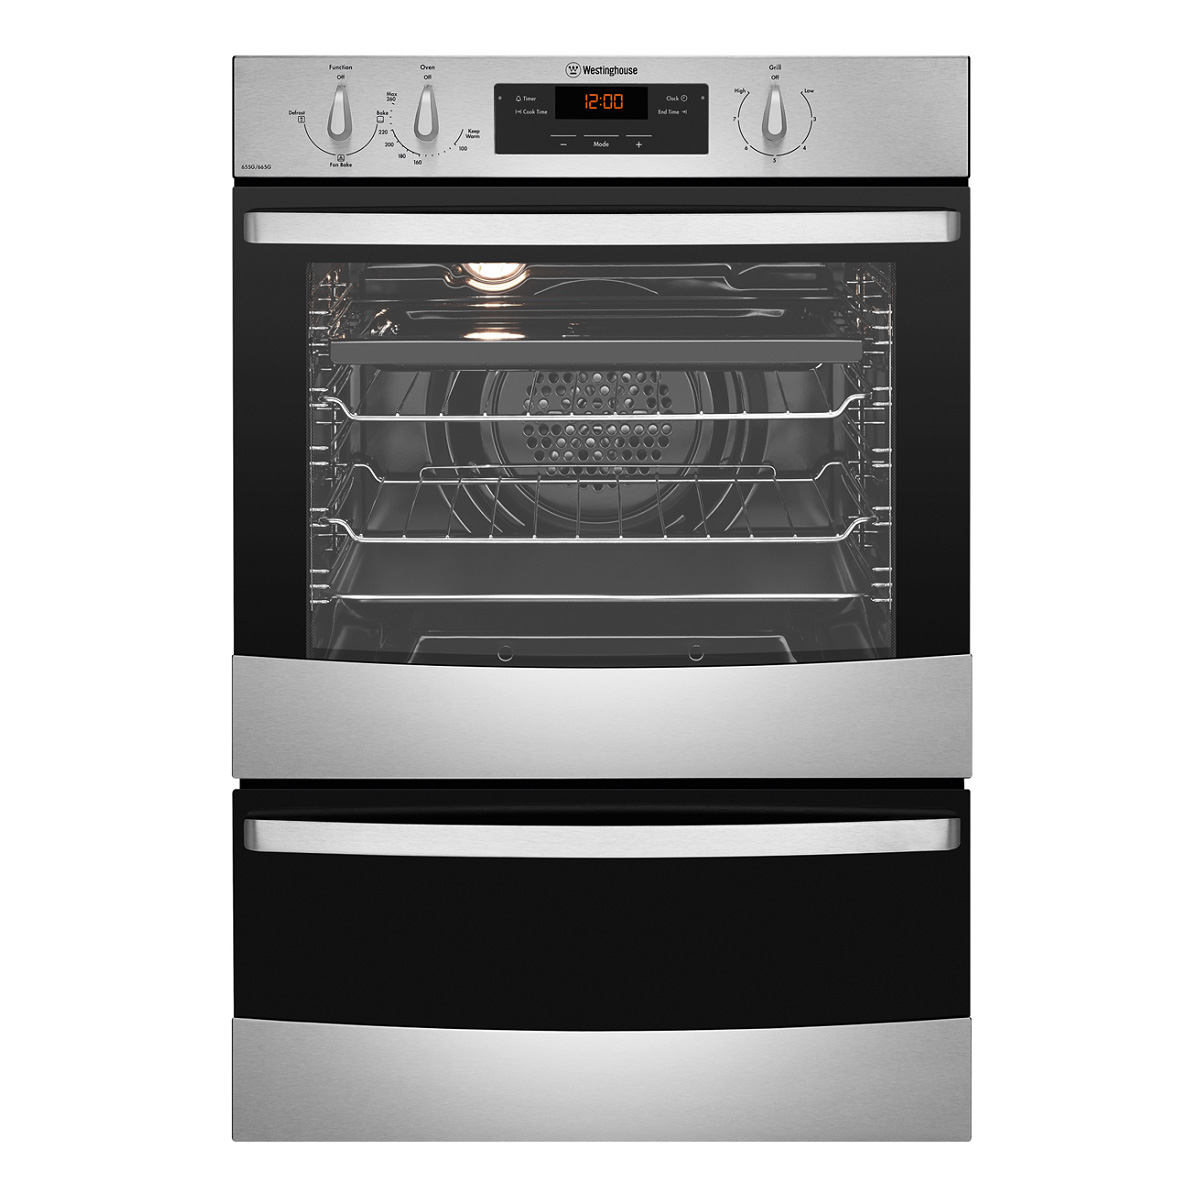 Westinghouse WVG665SLPG Gas Wall Oven 36376